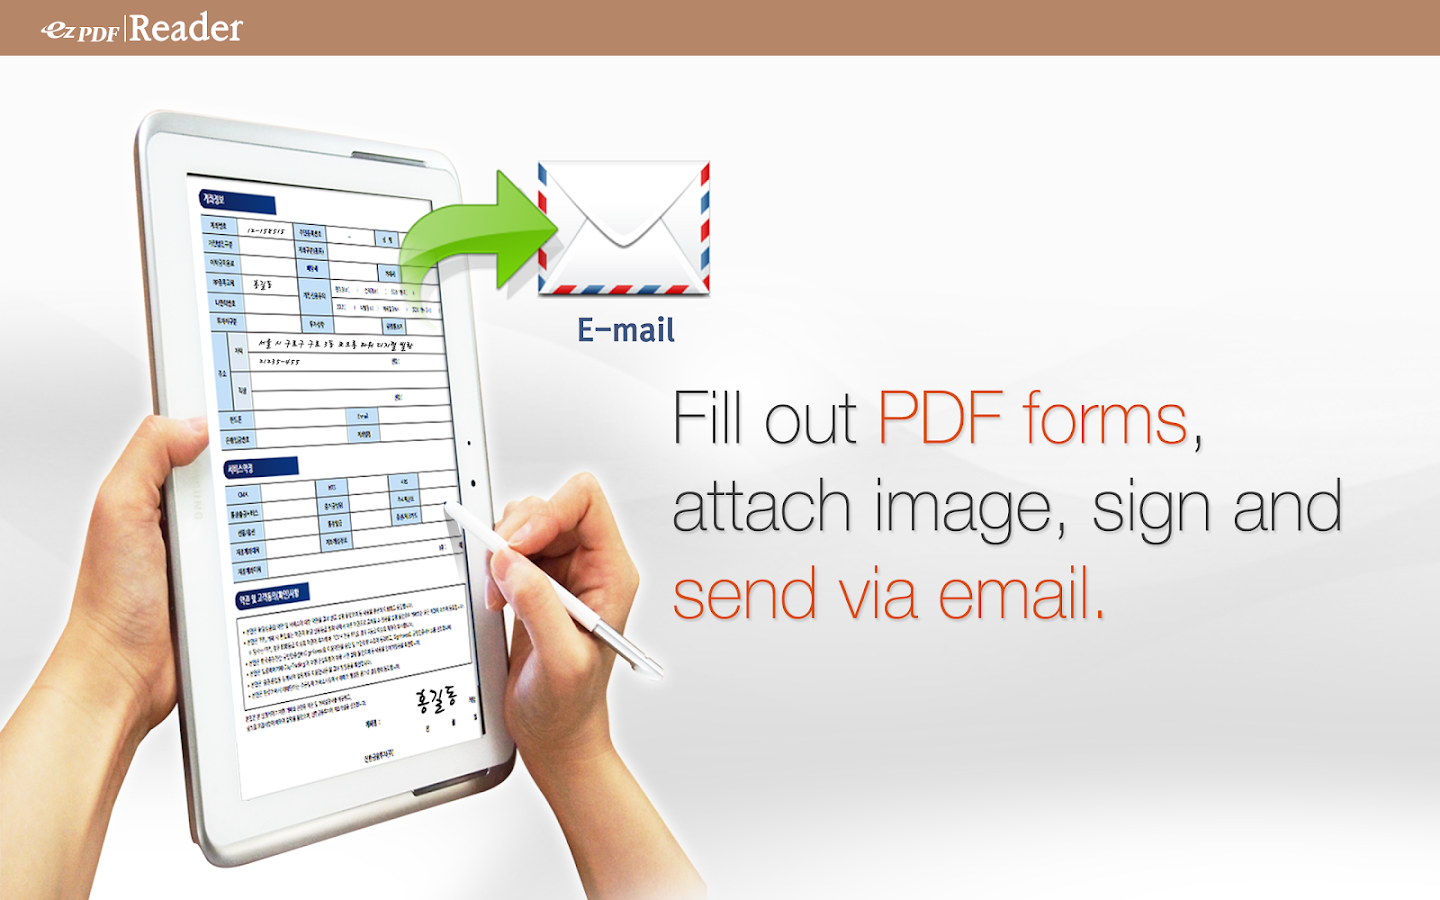 ezPDF Reader PDF Annotate Form Screenshot 13